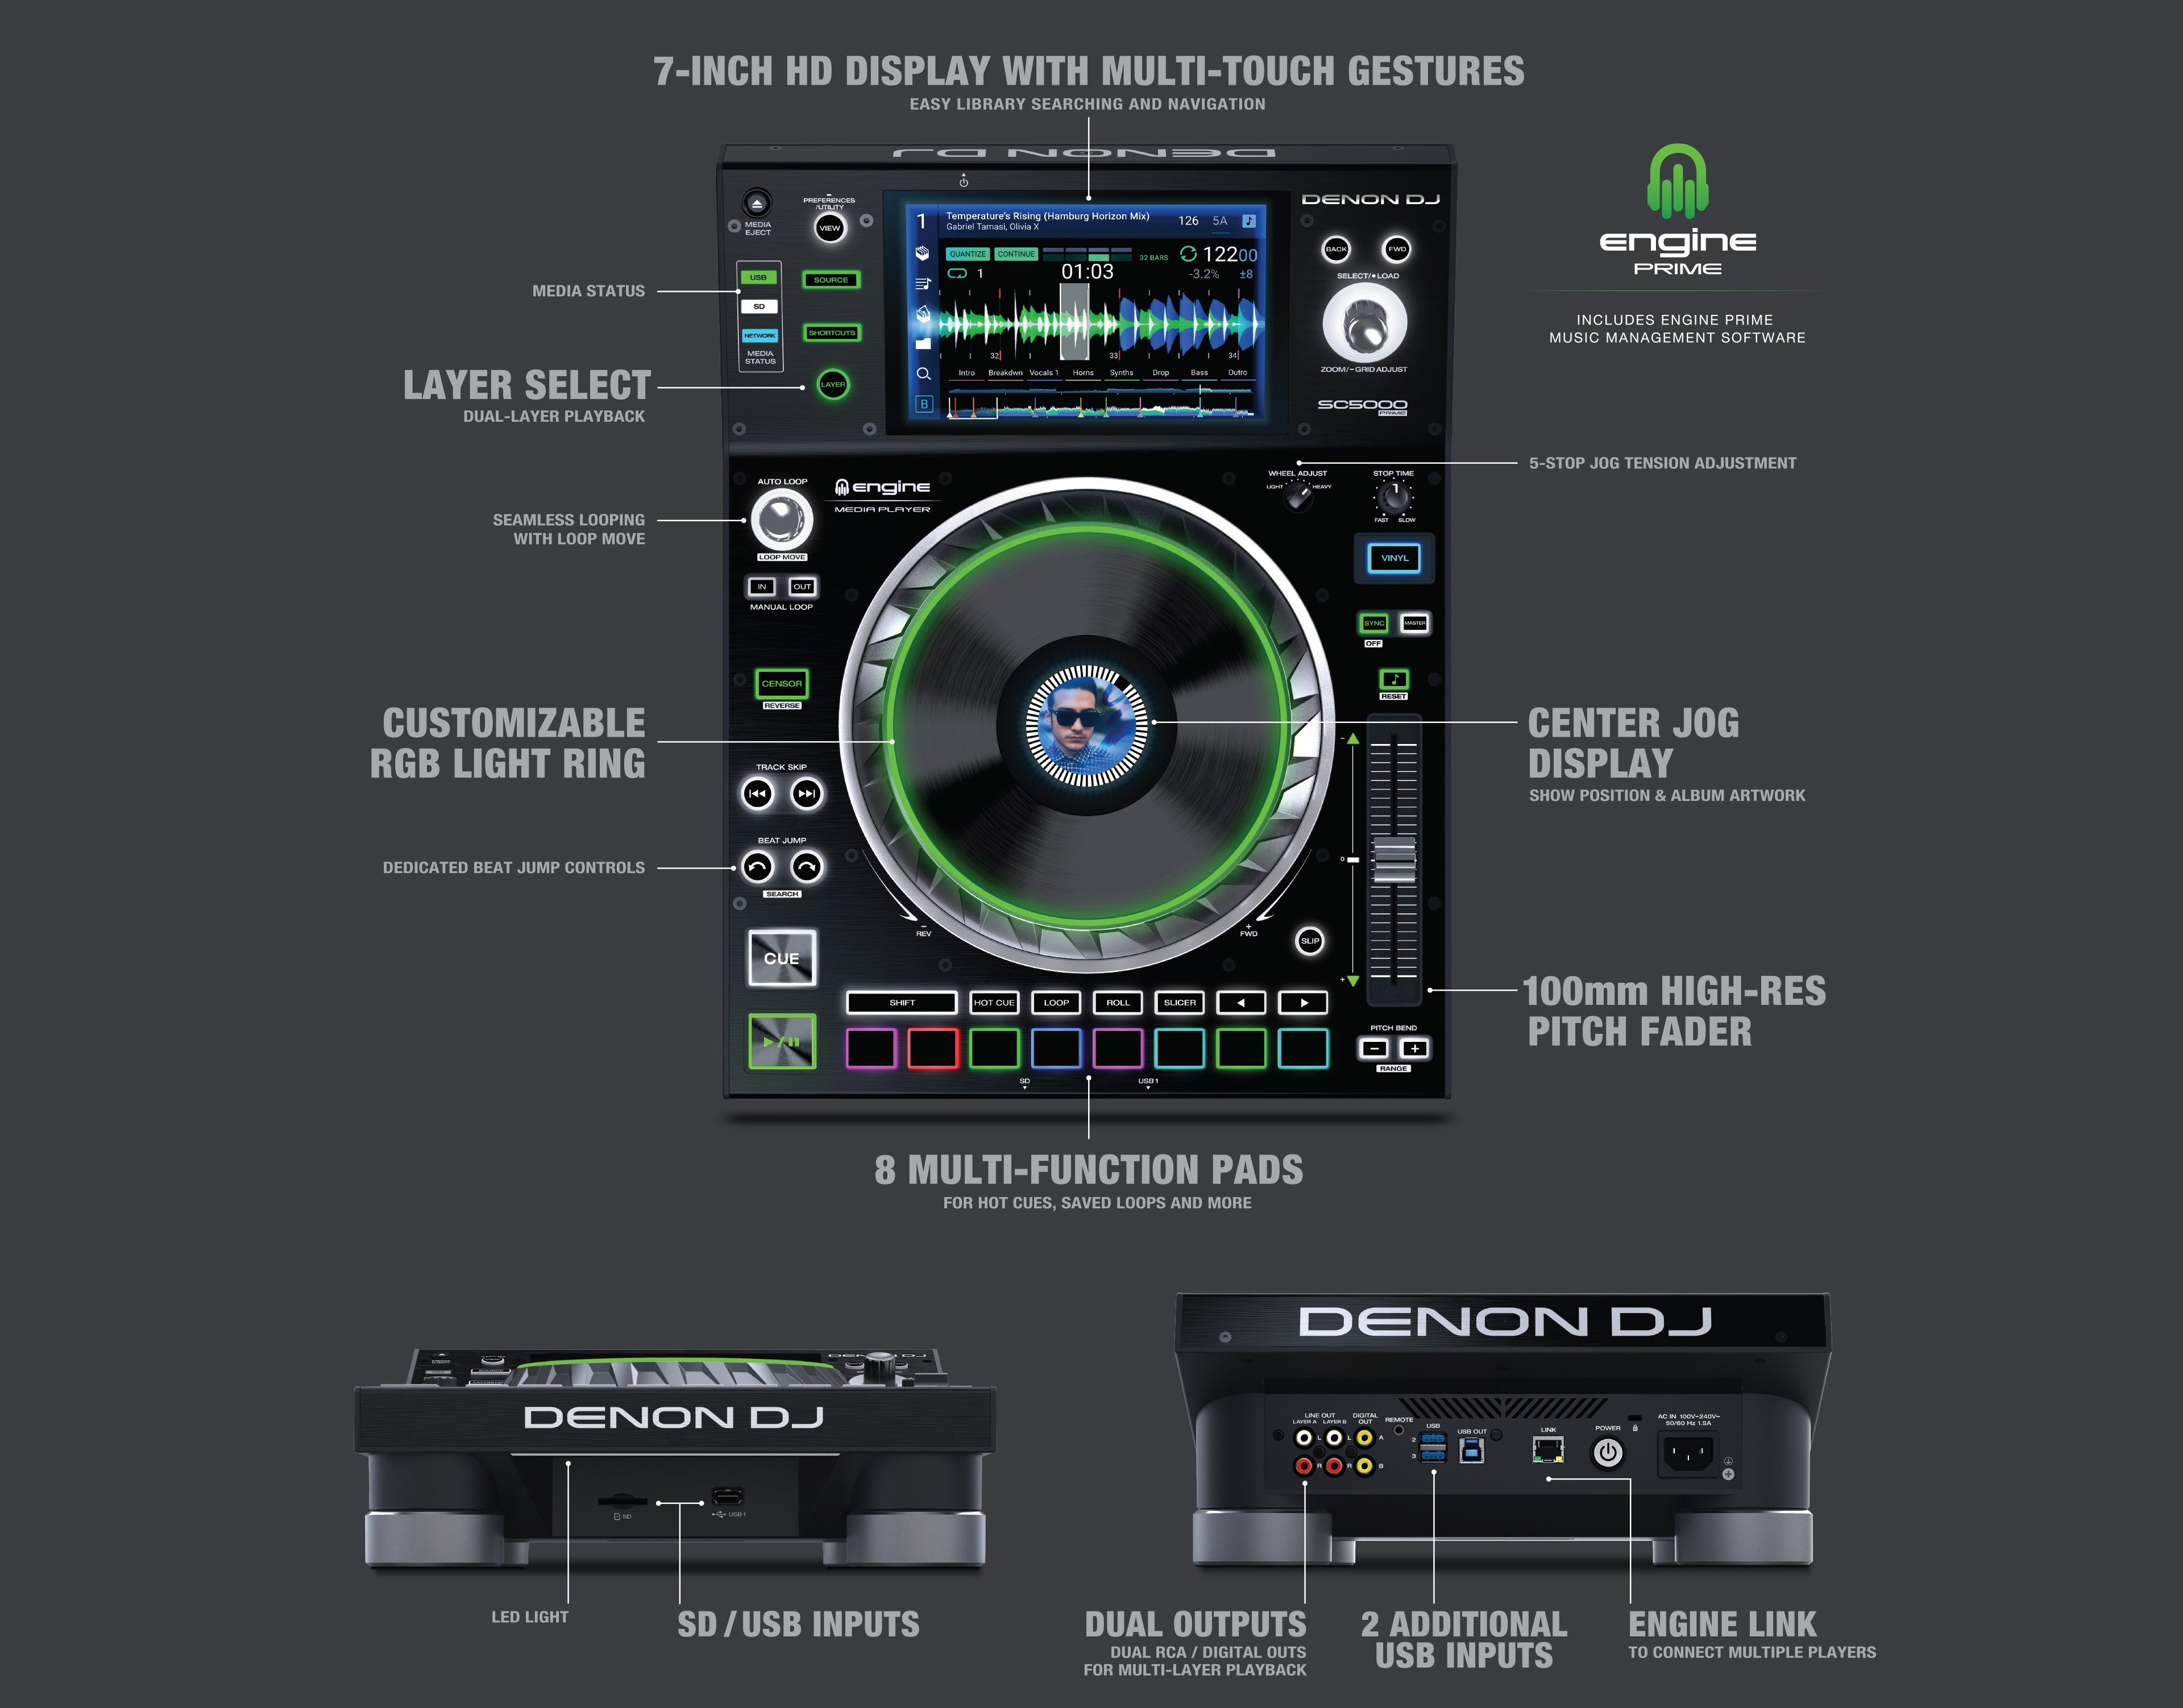 DENON-DJ-SC5000-PRIME-Professioneller-DJ-Media-Player-mit-7-Multi-Touch-Display11.jpg